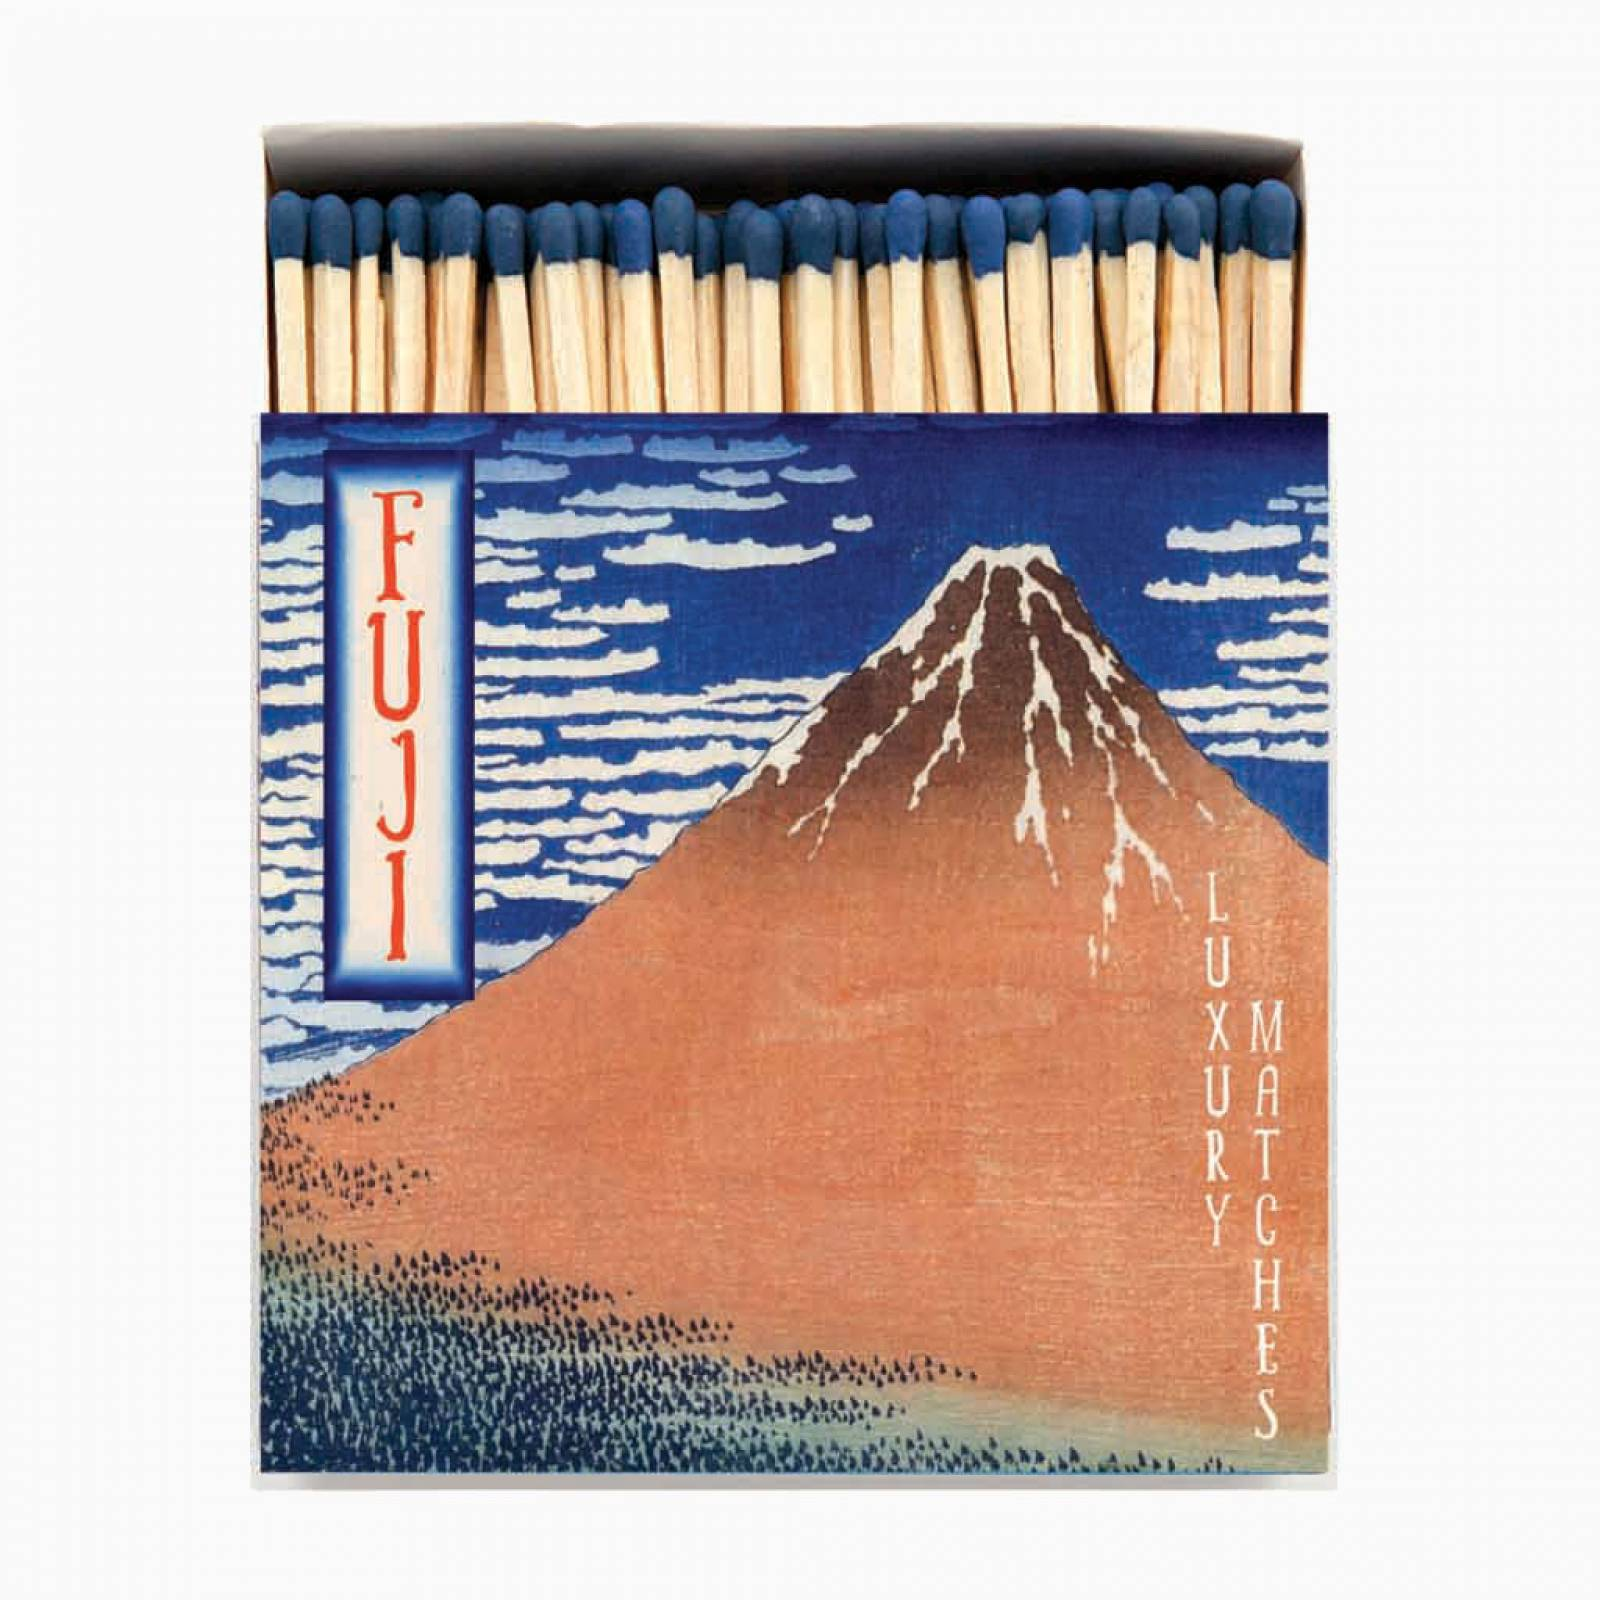 Mount Fuji - Square Box Of Safety Matches